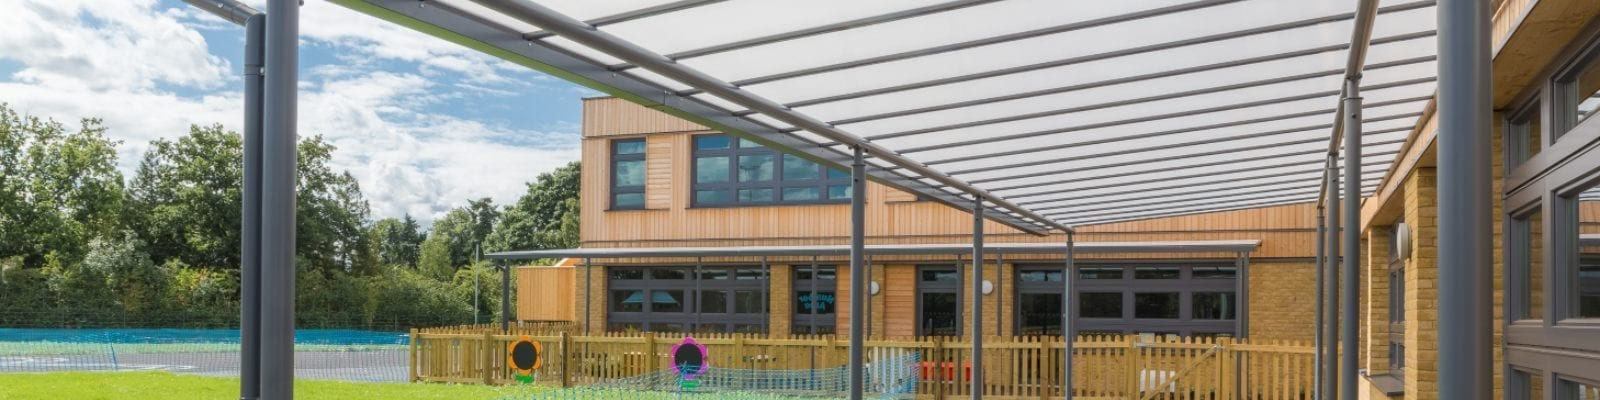 Playground canopy we made for Simon Balle All Through School